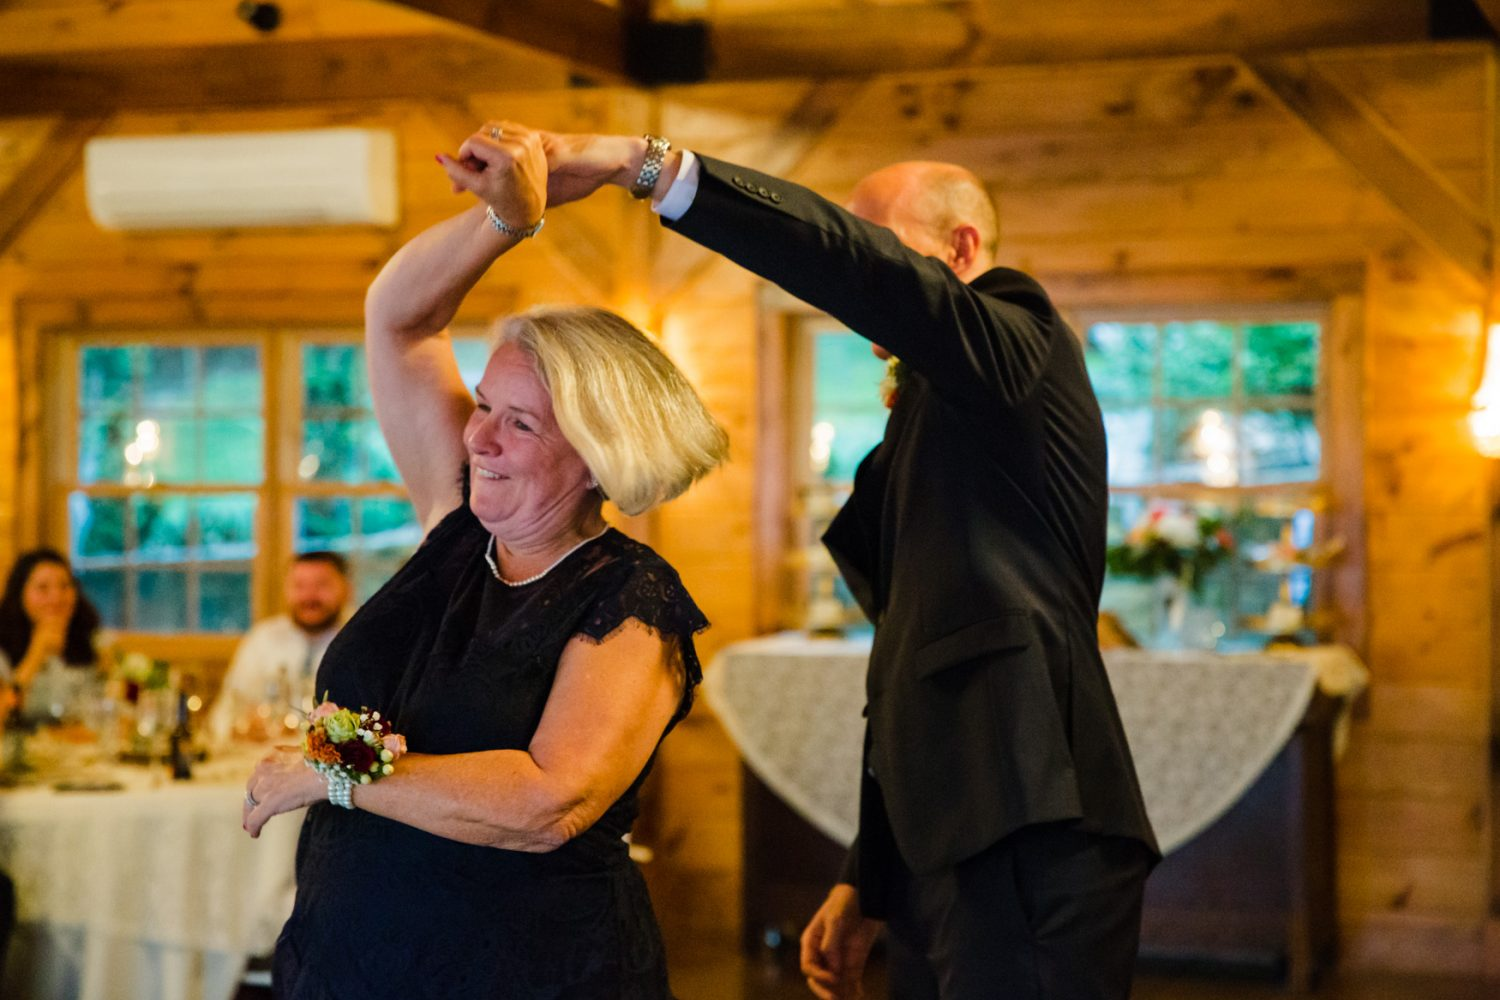 Mother Son Dance Waynesville NC Wedding Photography Inn at Tranquility Farm